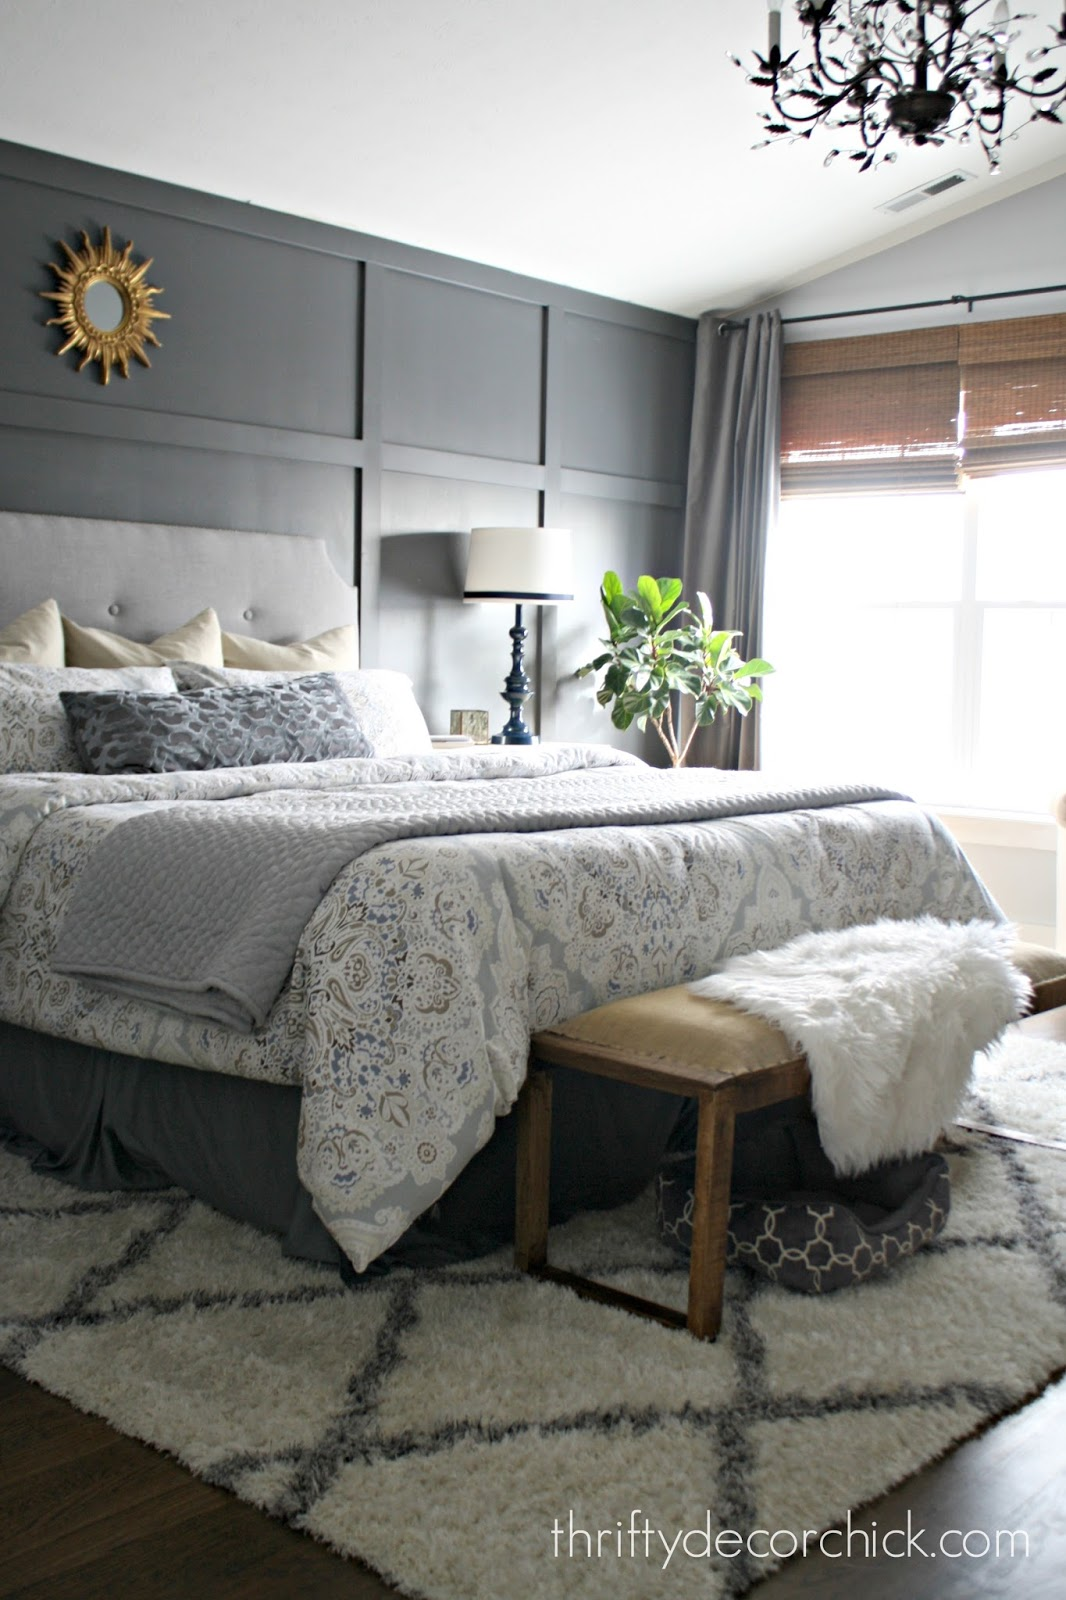 3 Room Hdb Accent Wall: How To Give A New House Tons Of Character From Thrifty